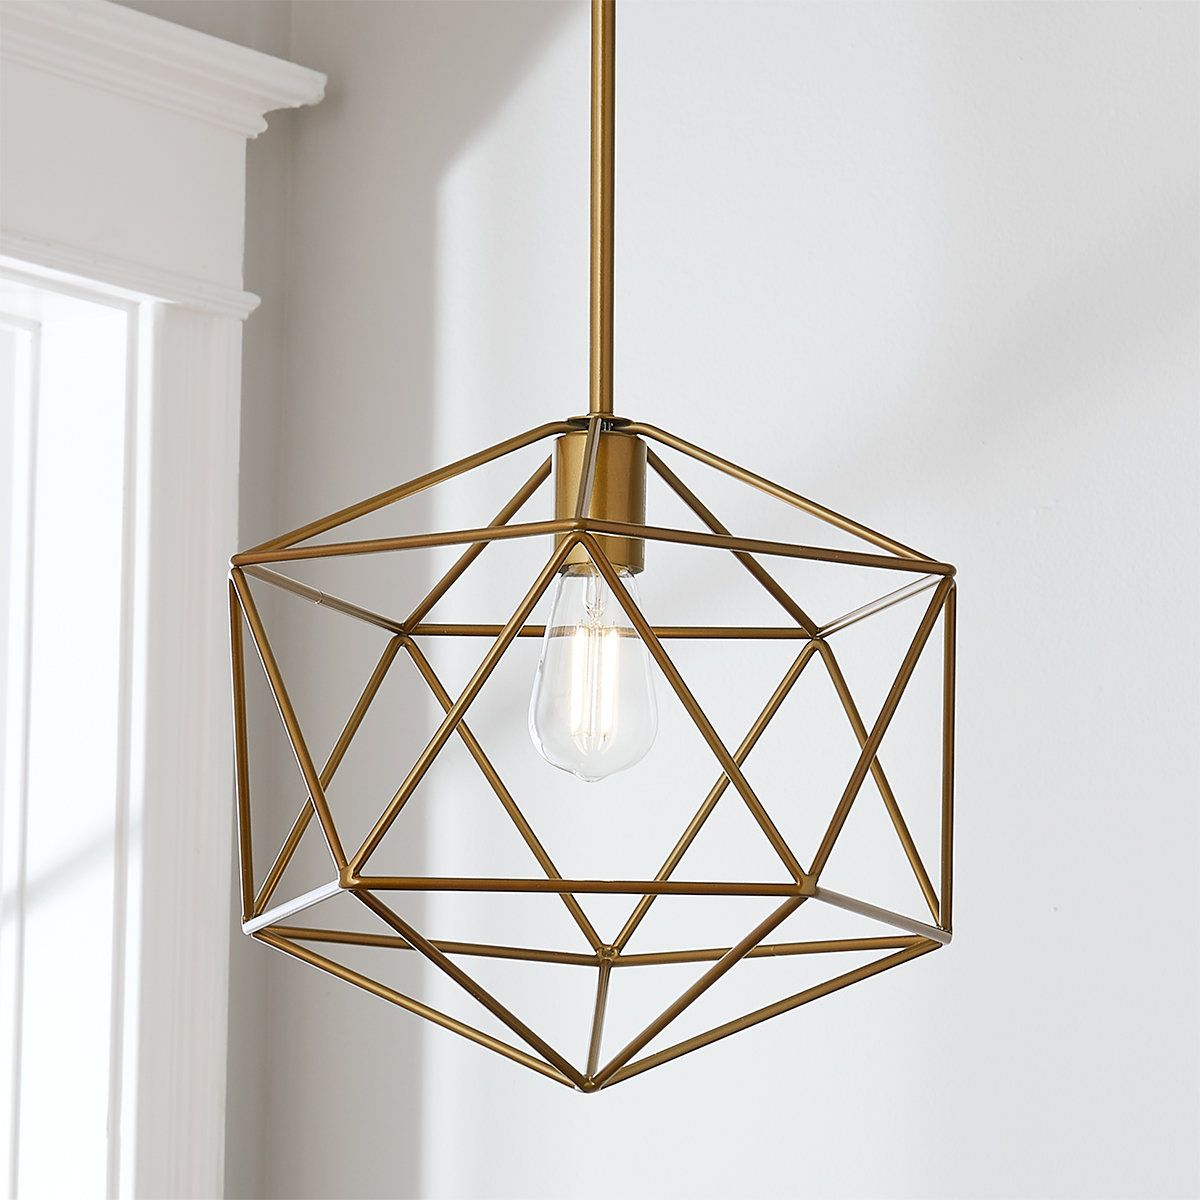 Young House Love Equilateral Pendant Geometric Pendant Light Gold Geometric Pendant Light Gold Pendant Lighting